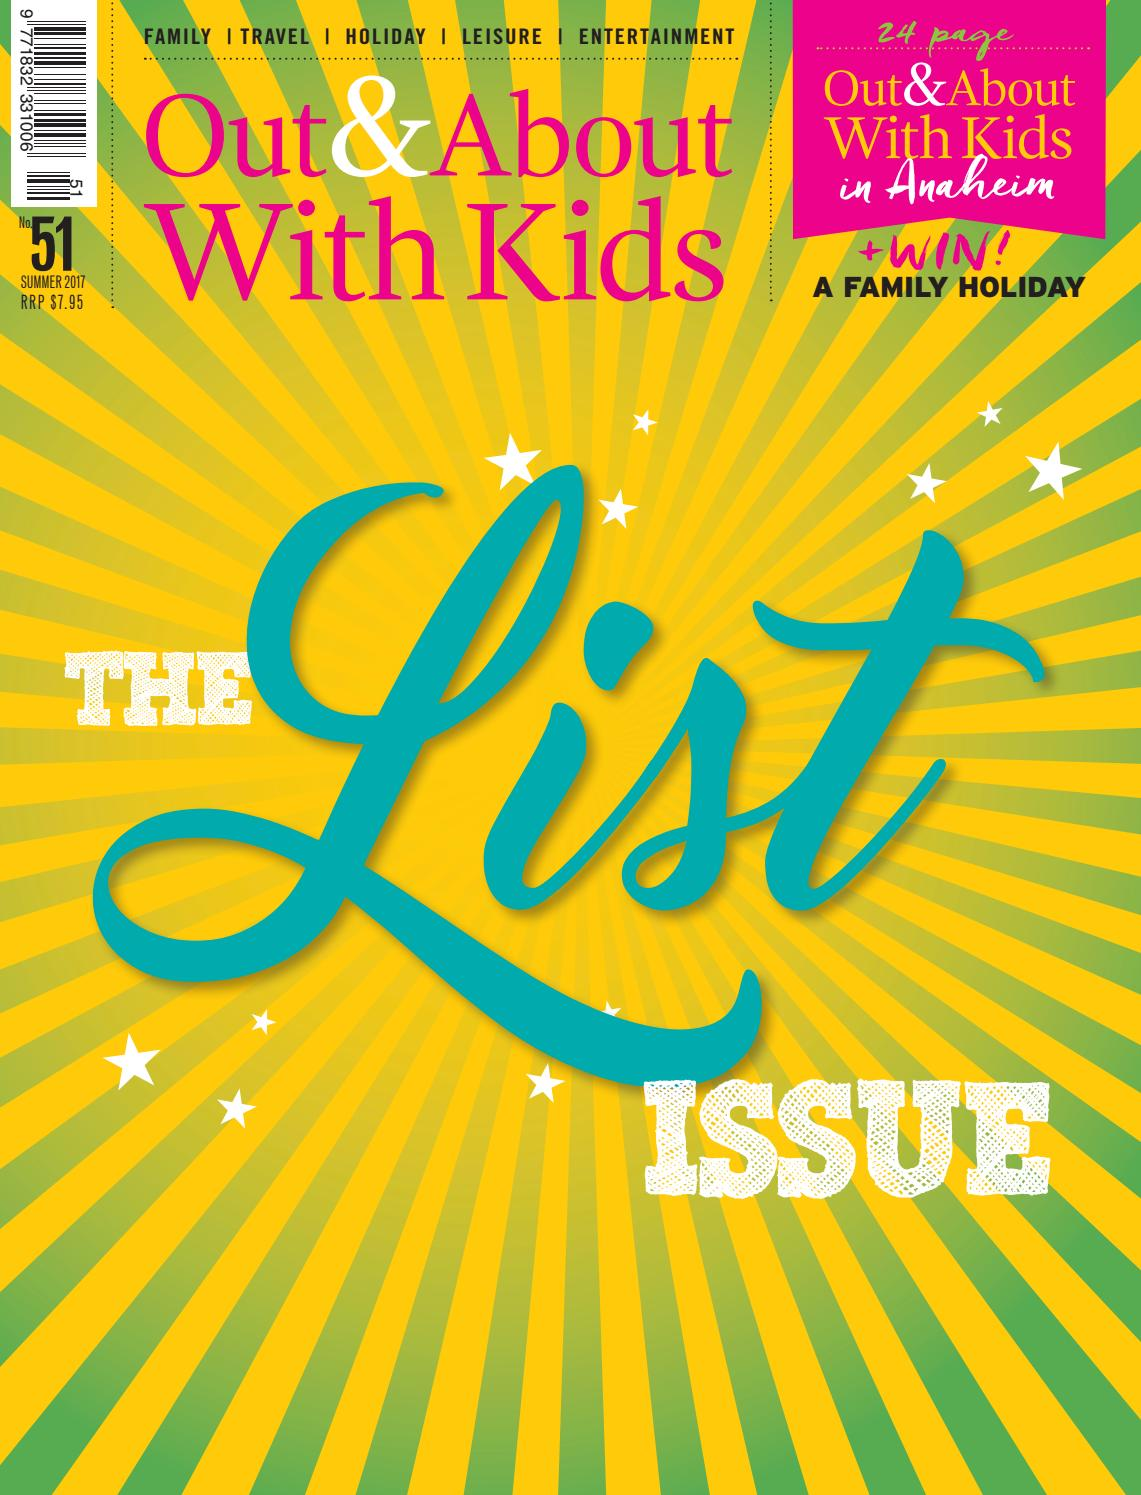 dc304dcffb Out & About with Kids #51 Summer 2016 by Out & About with kids - issuu